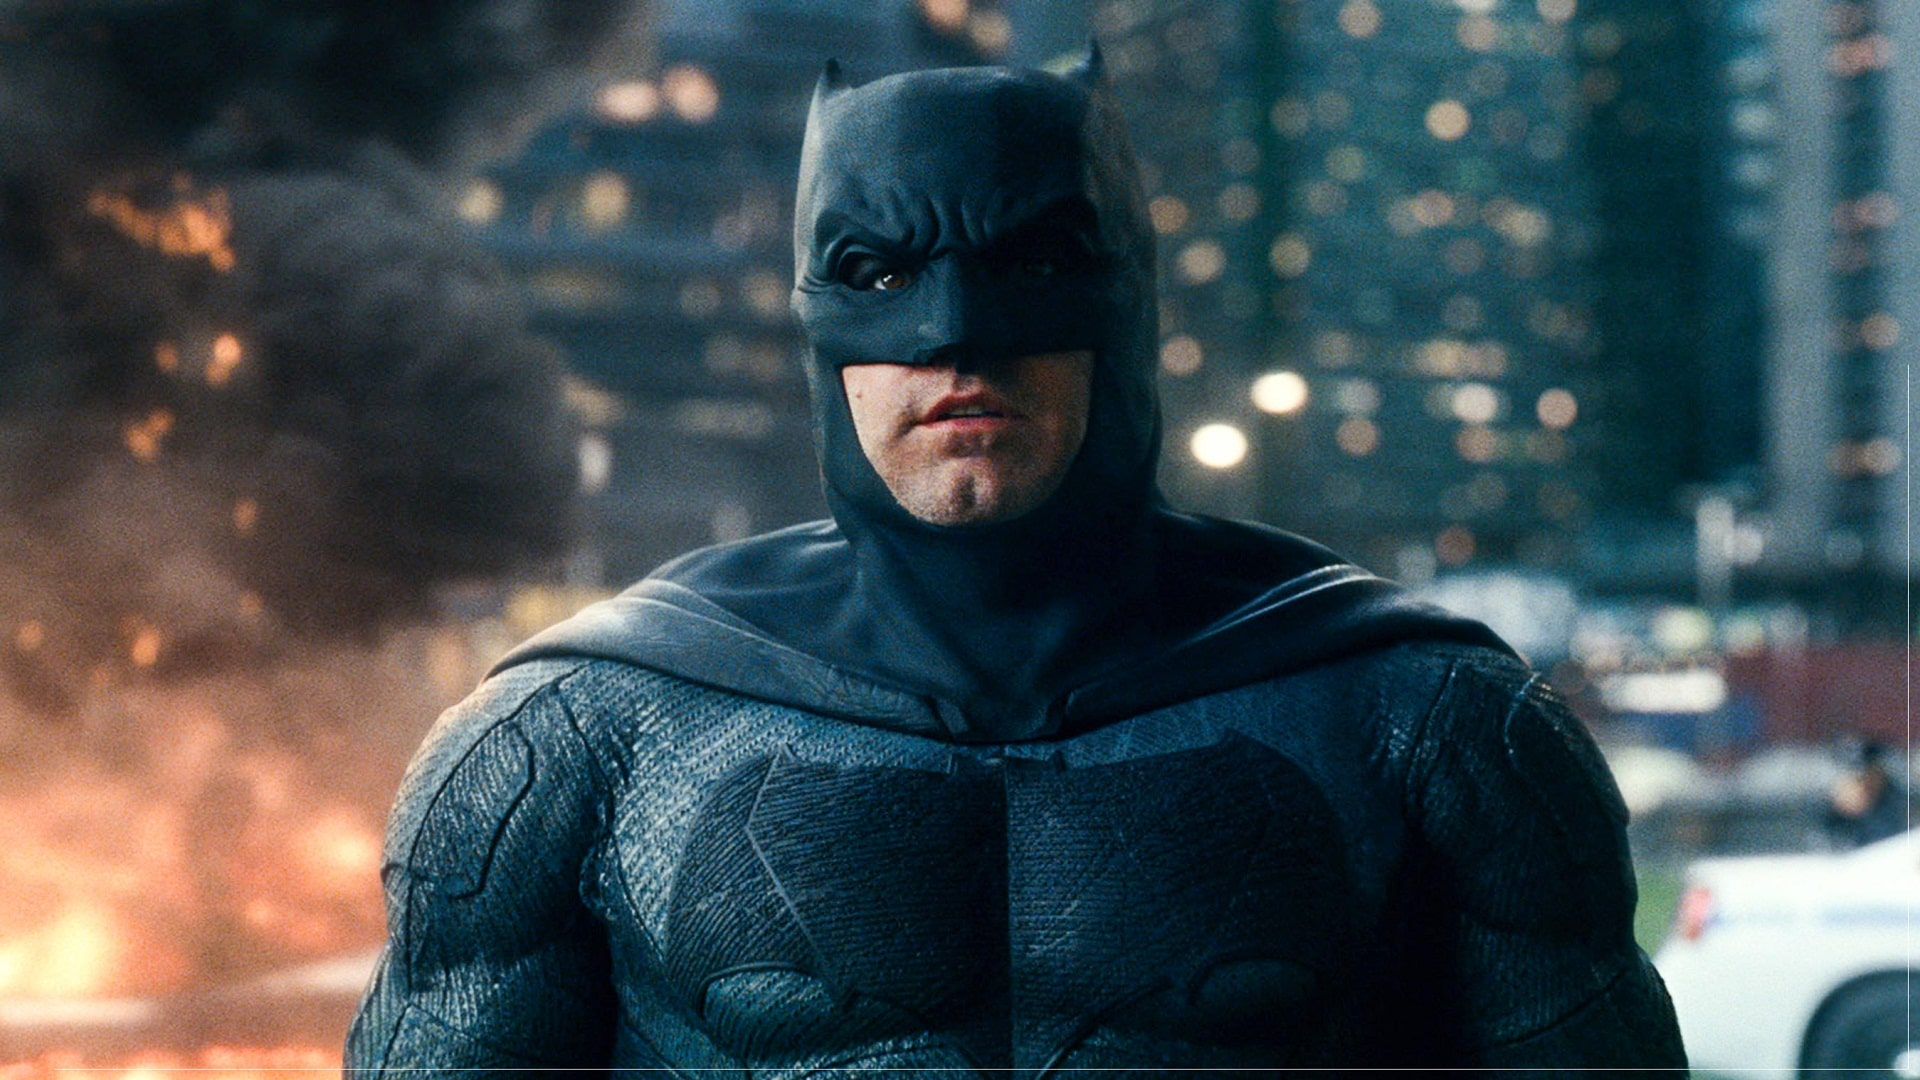 Ben Affleck explica por qué abandonó 'The Batman'